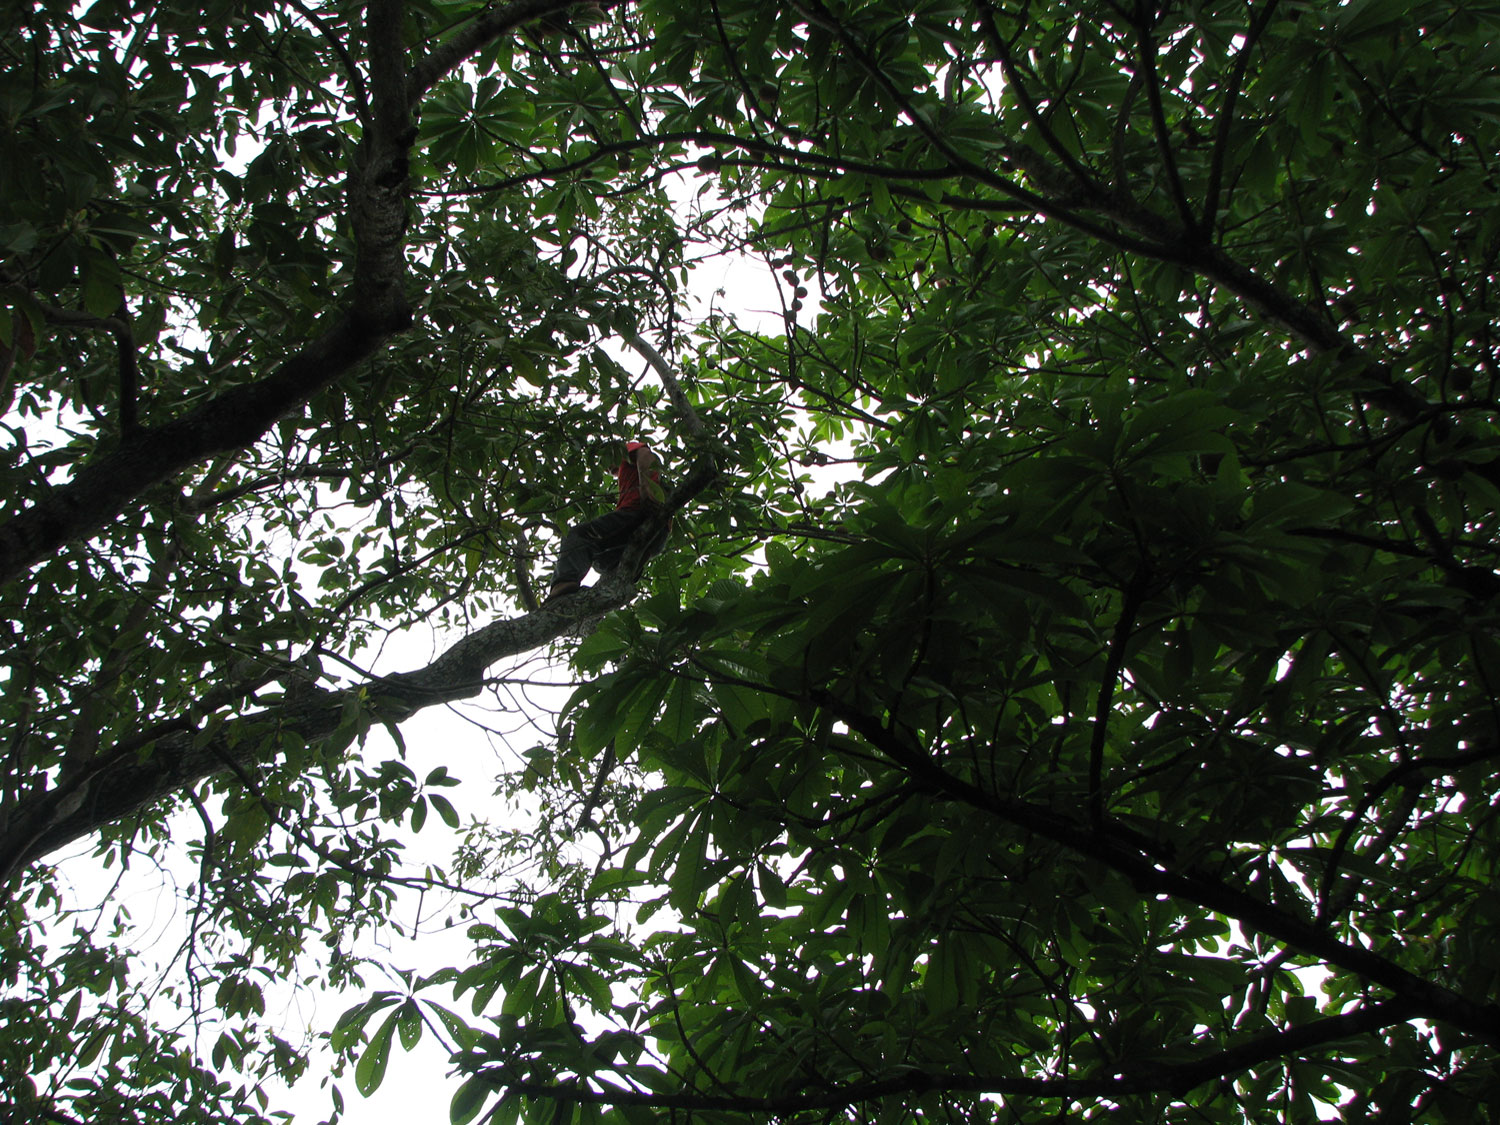 Avacado harvesting high up in a tree